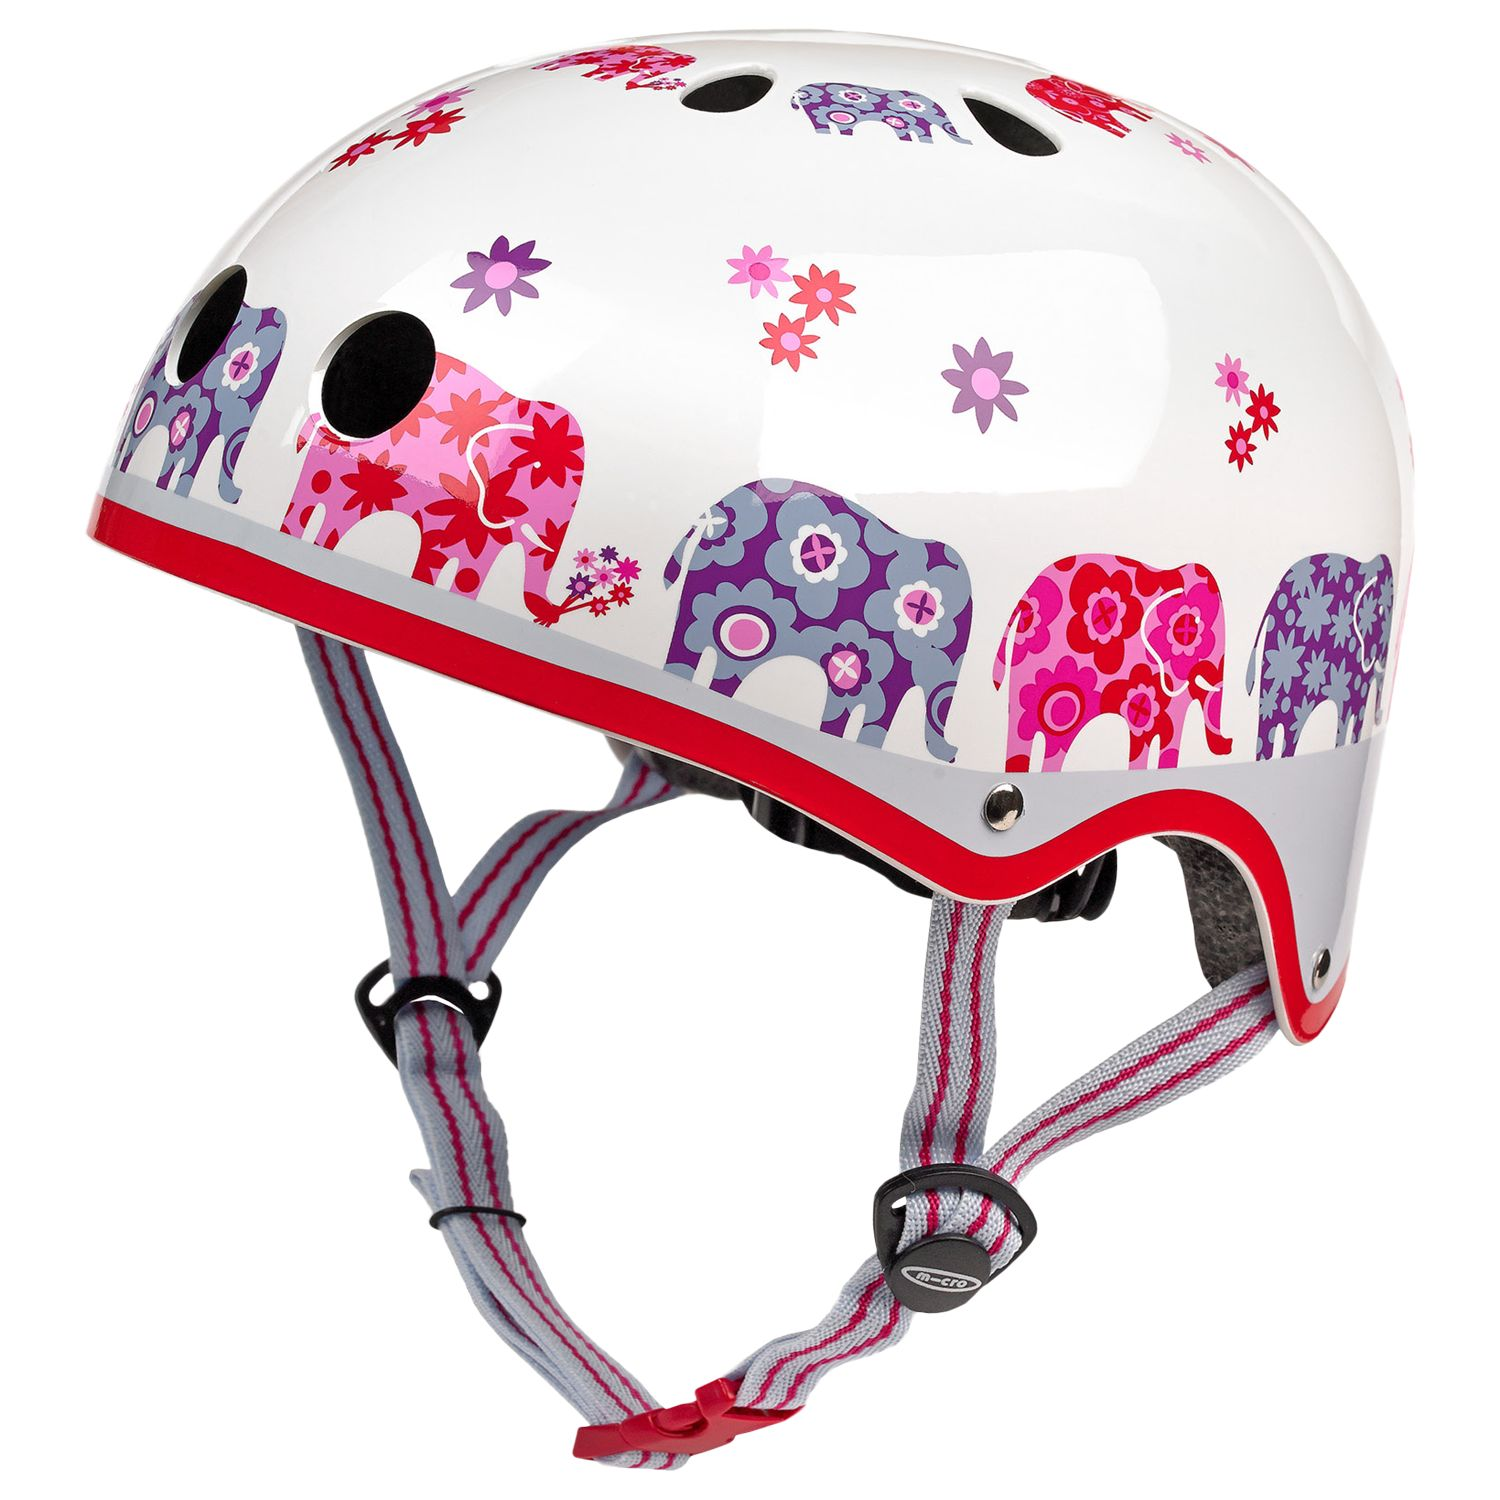 Micro Micro Scooter Elephant Safety Helmet, White/Multi, Medium